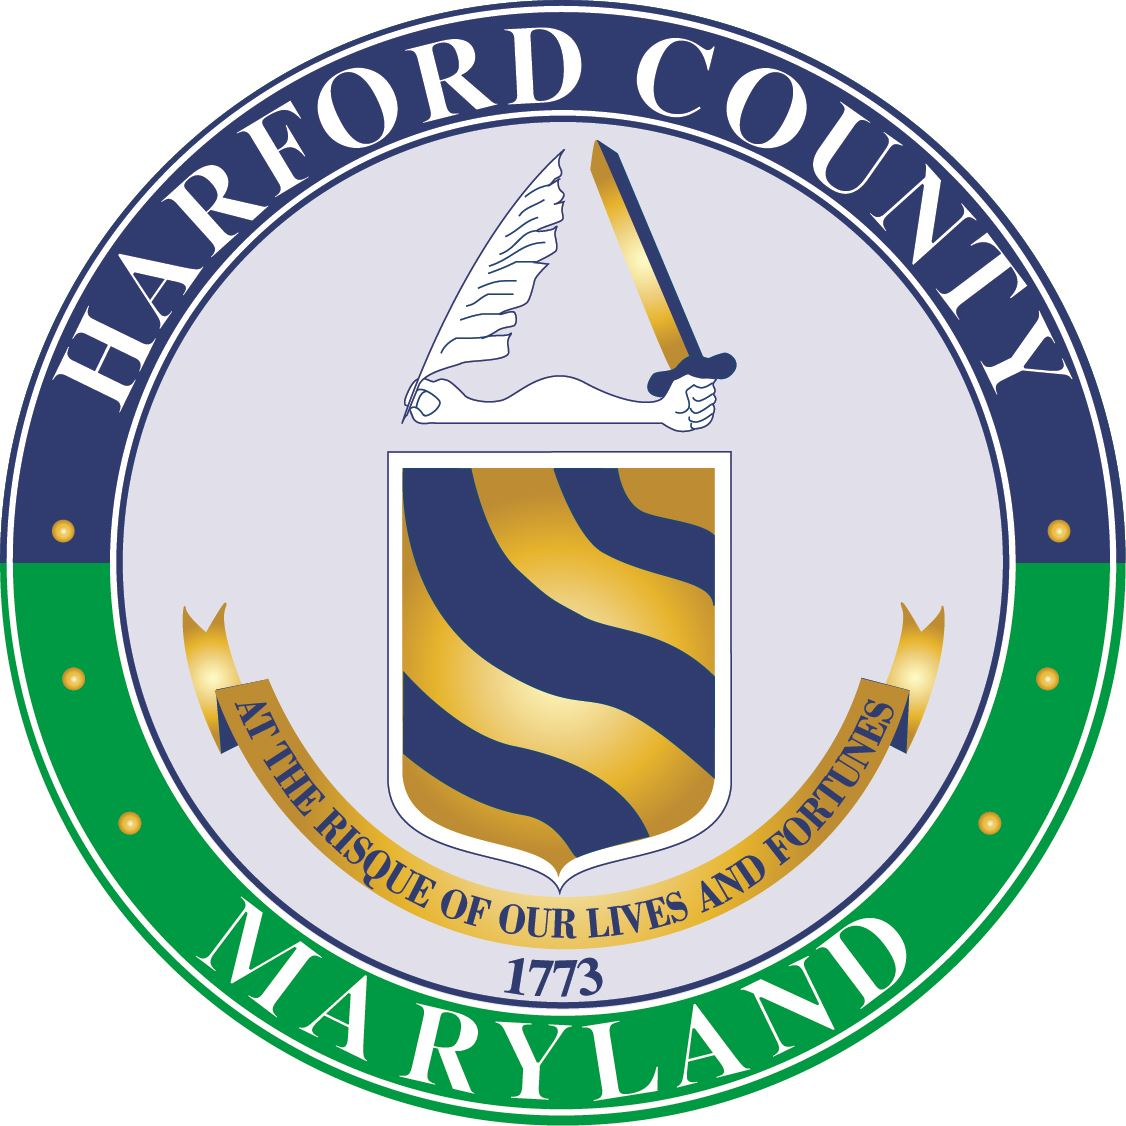 Harford County to Host Free Citizen Emergency Preparedness Training